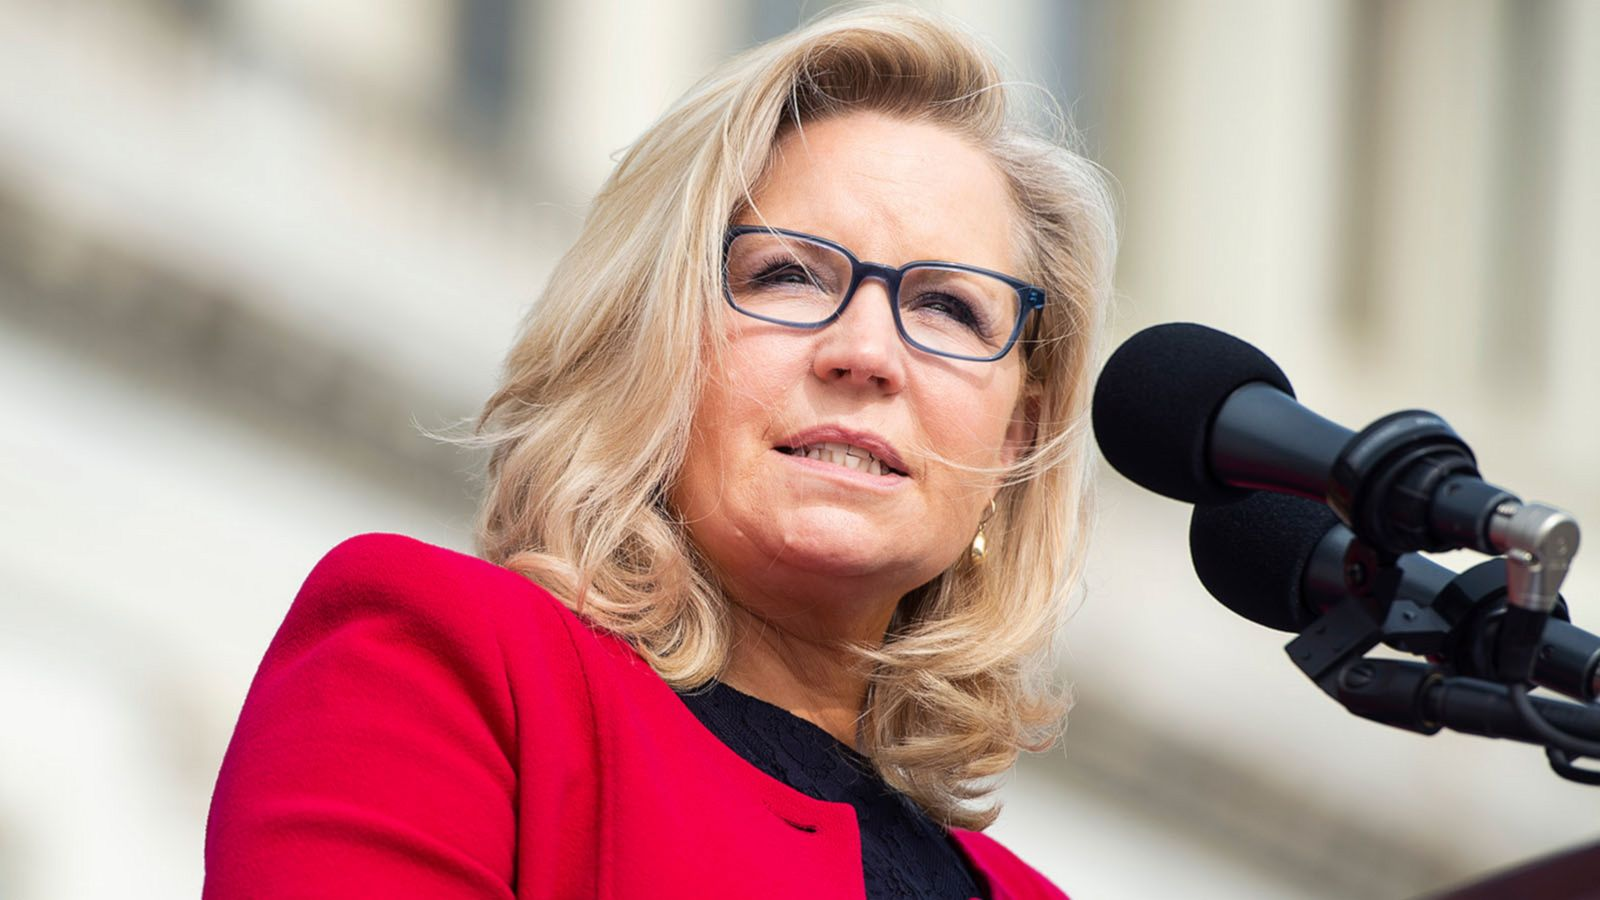 If Rep. Liz Cheney doesn't have a home in the GOP, who does?